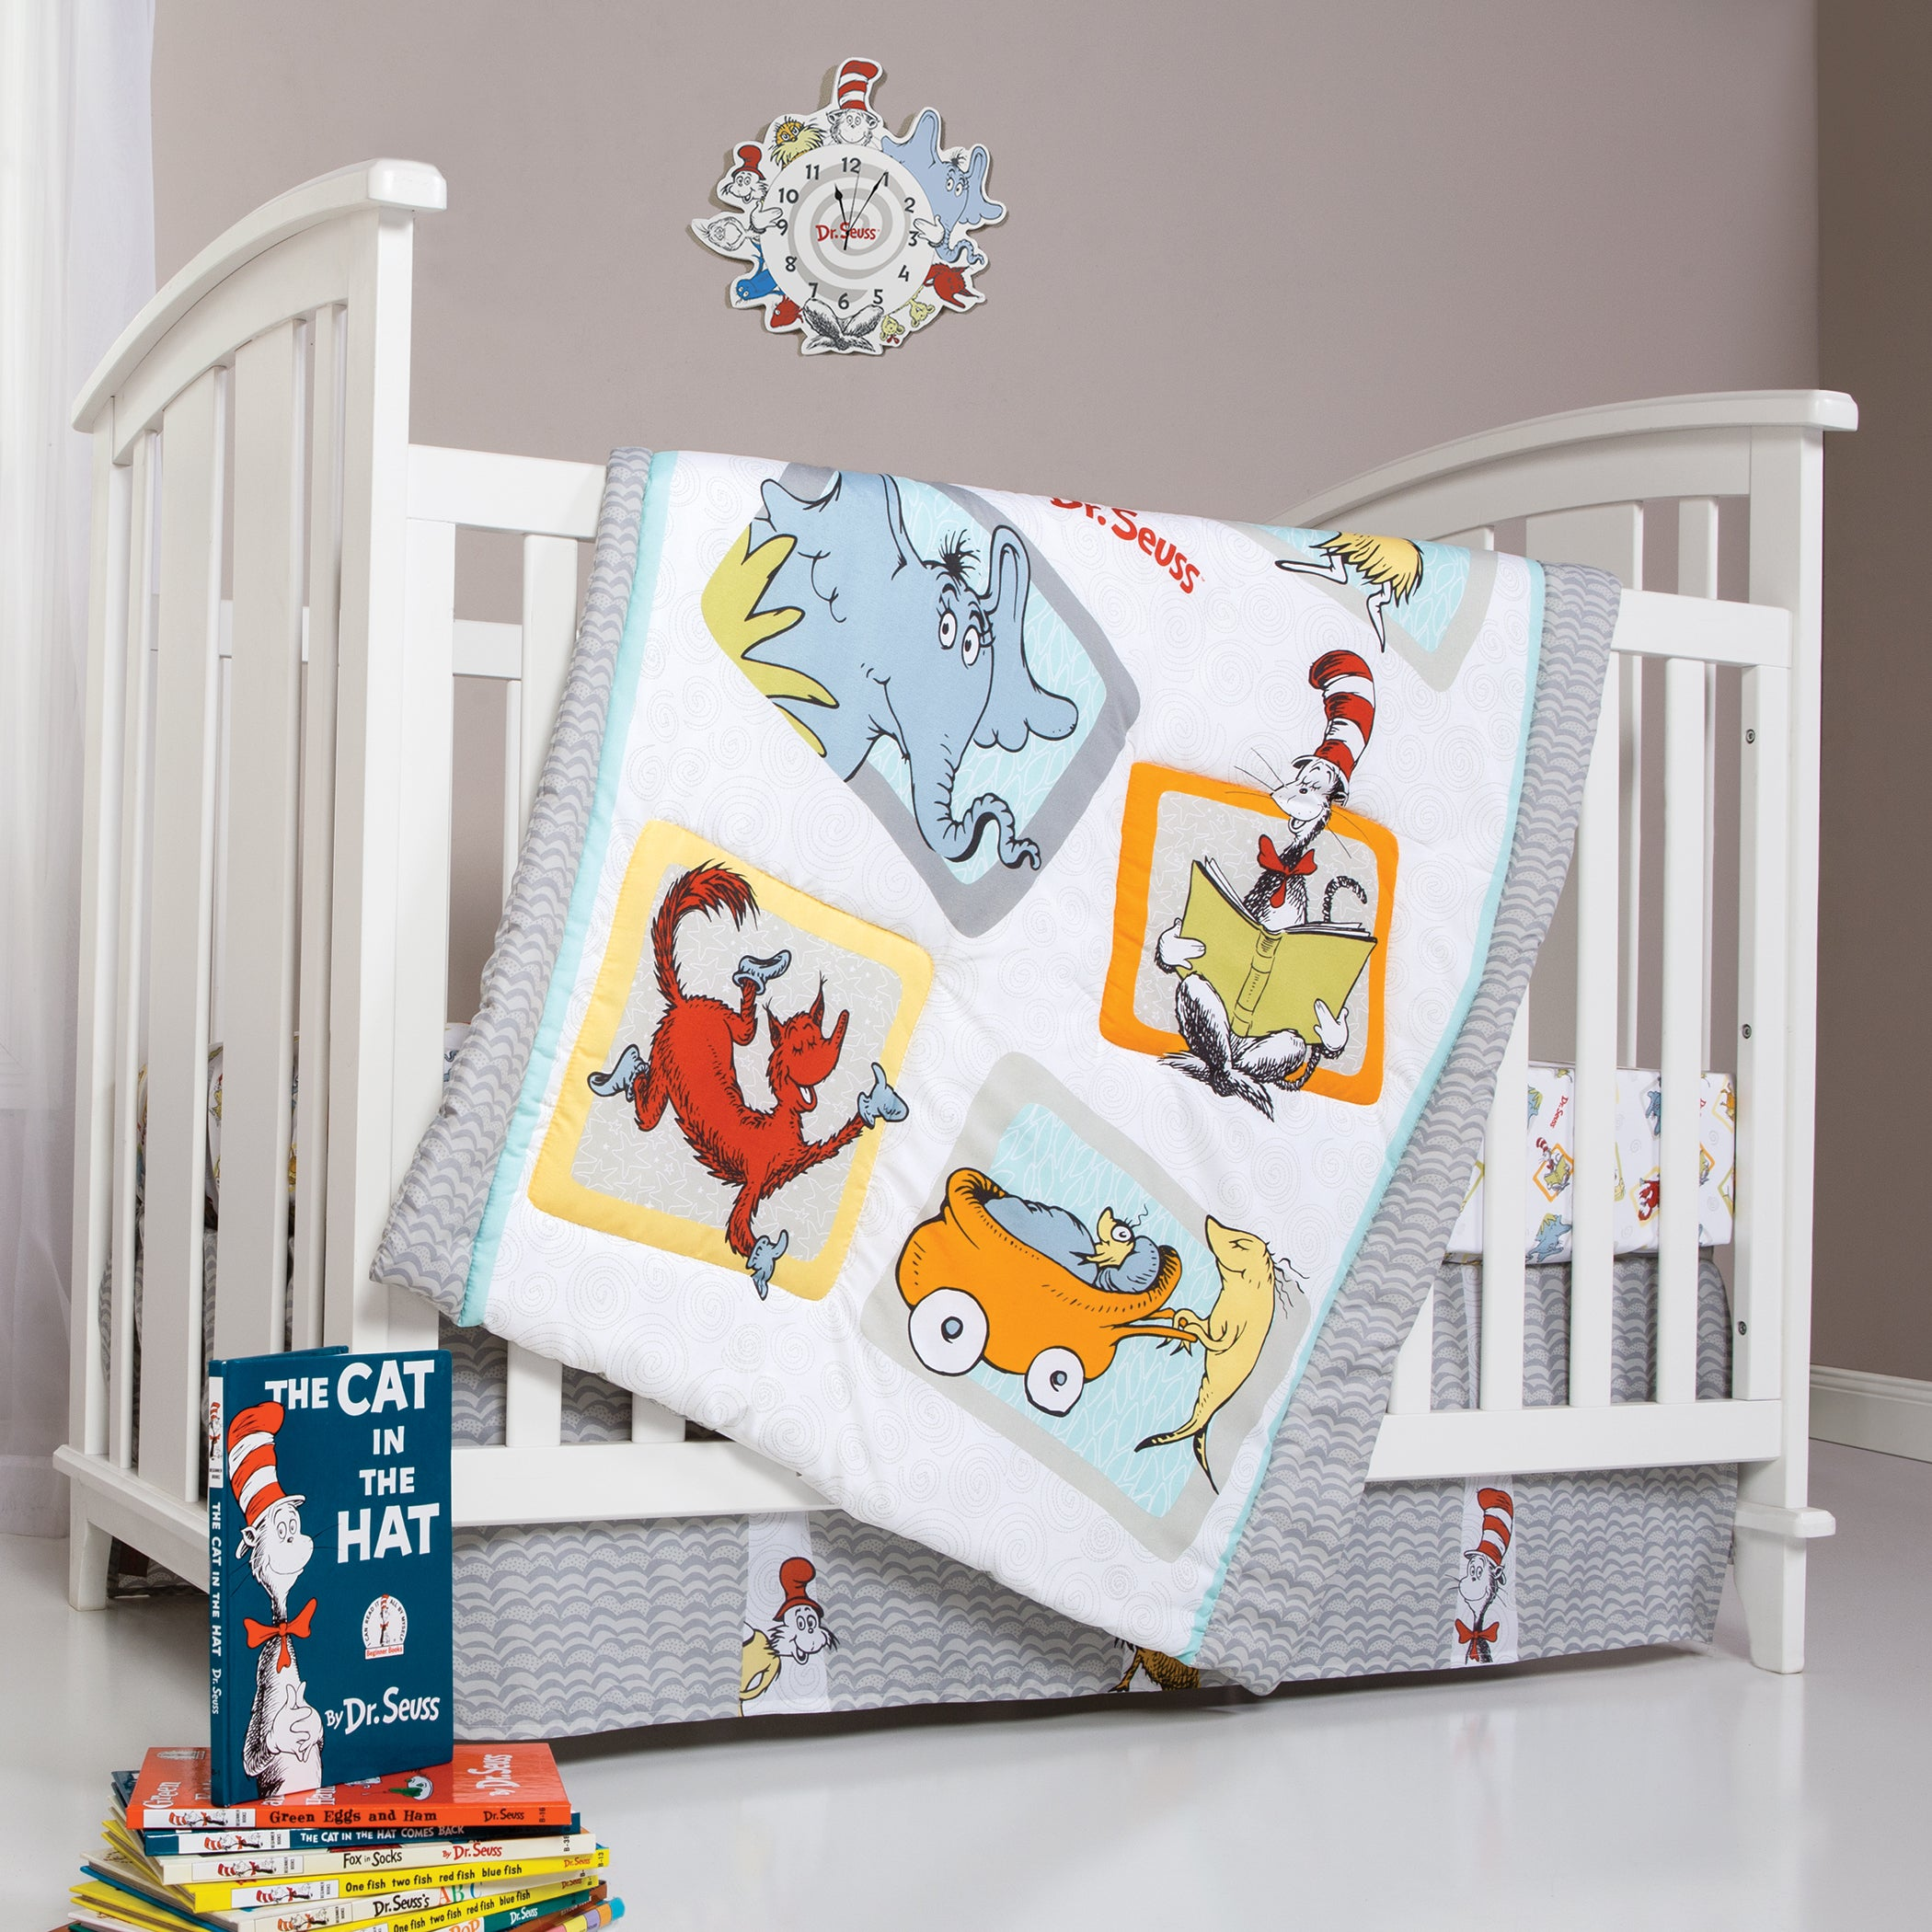 30016 Seuss Friends 5 Piece Crib Bedding Set Trend Lab Dr